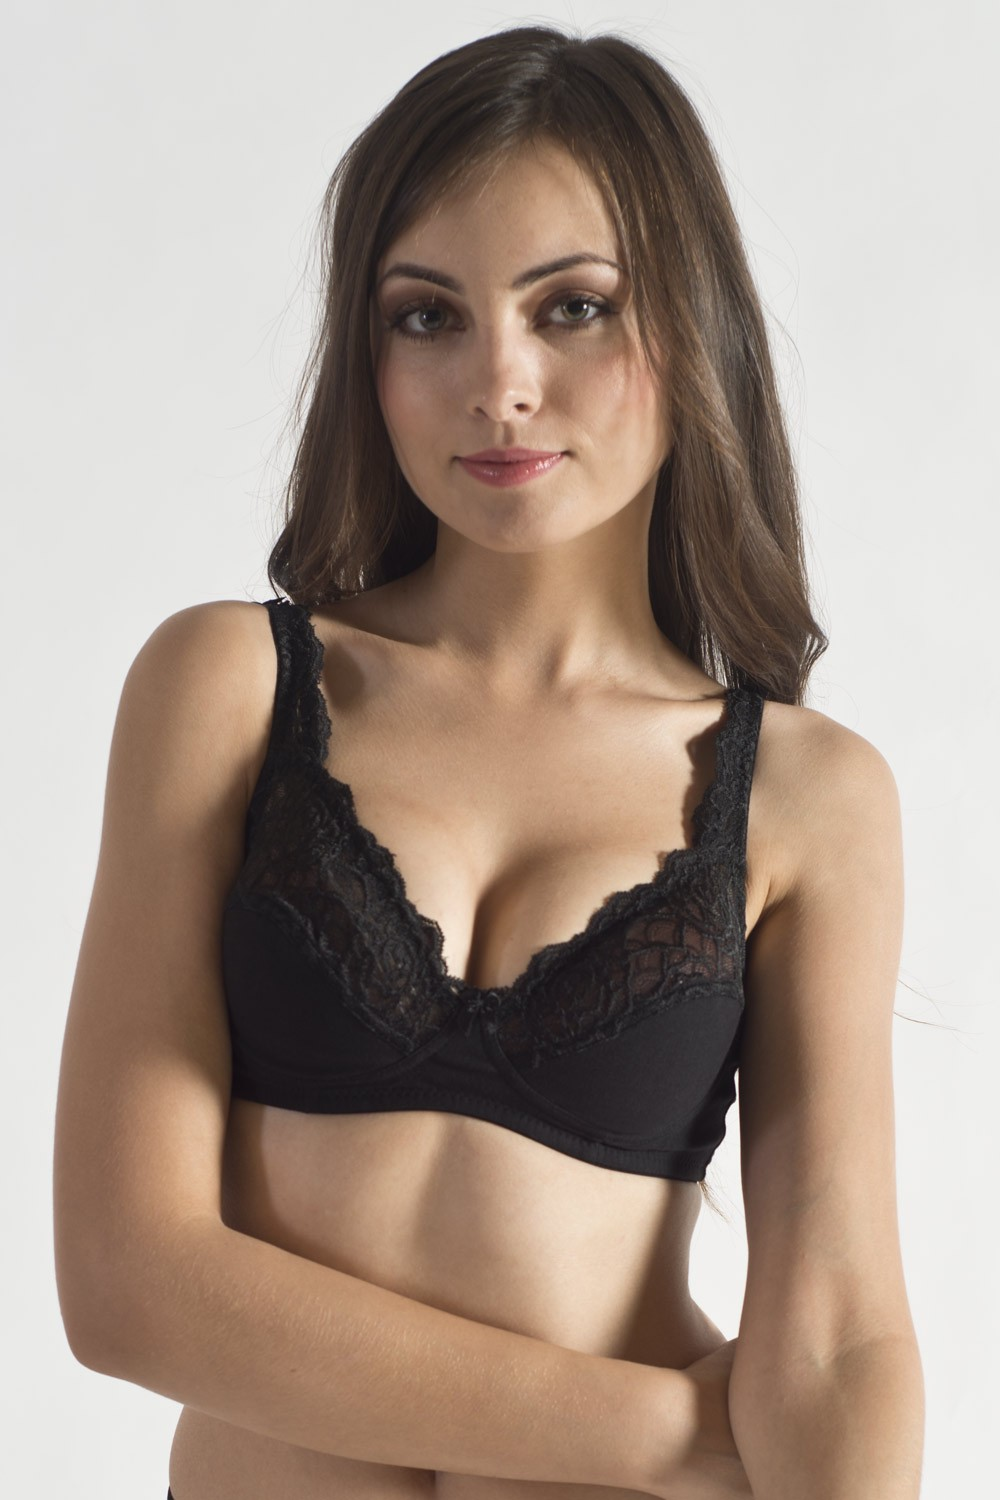 e534da52a6 They provide as good support as padded bras- The actual support is provided  by the straps